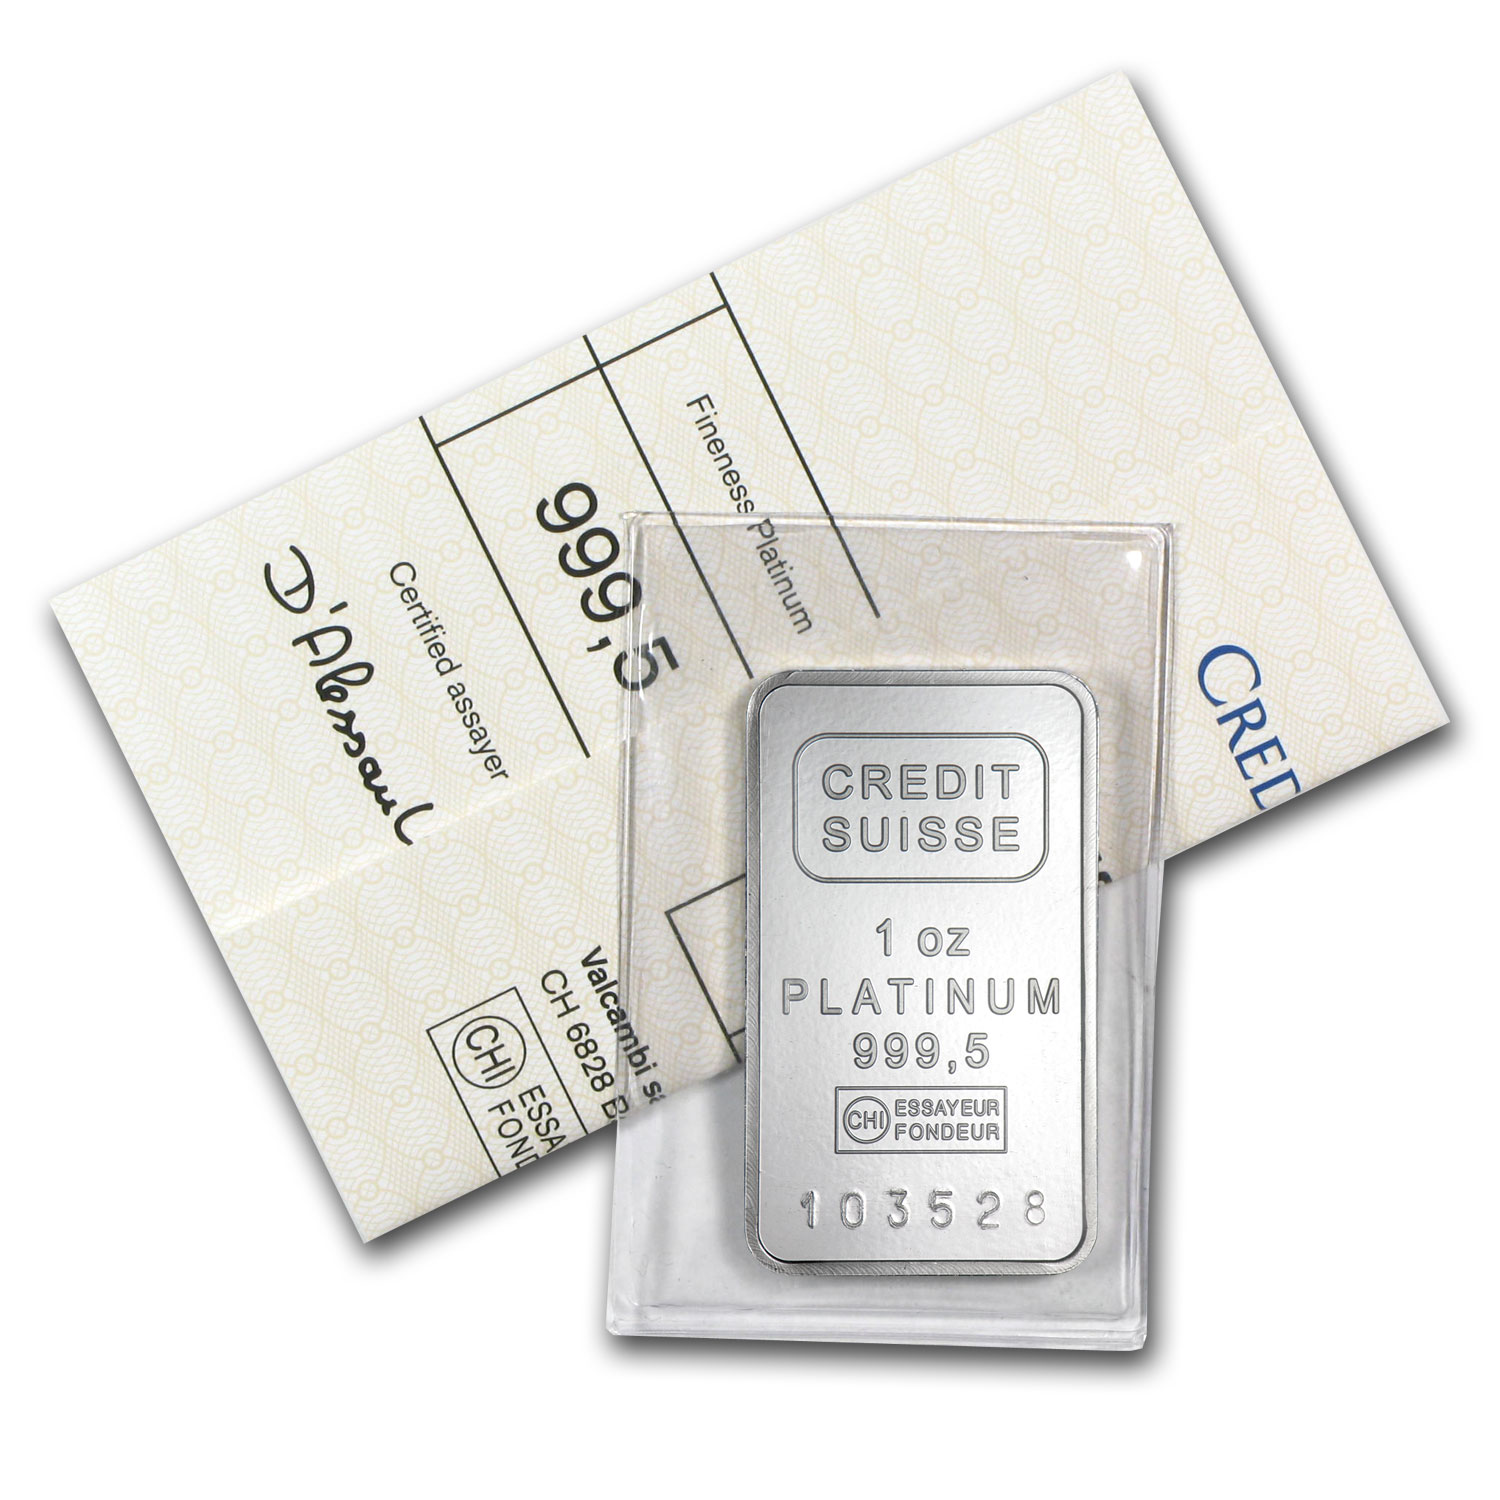 1 oz Platinum Bar - Credit Suisse (.9995 Fine, w/Assay)